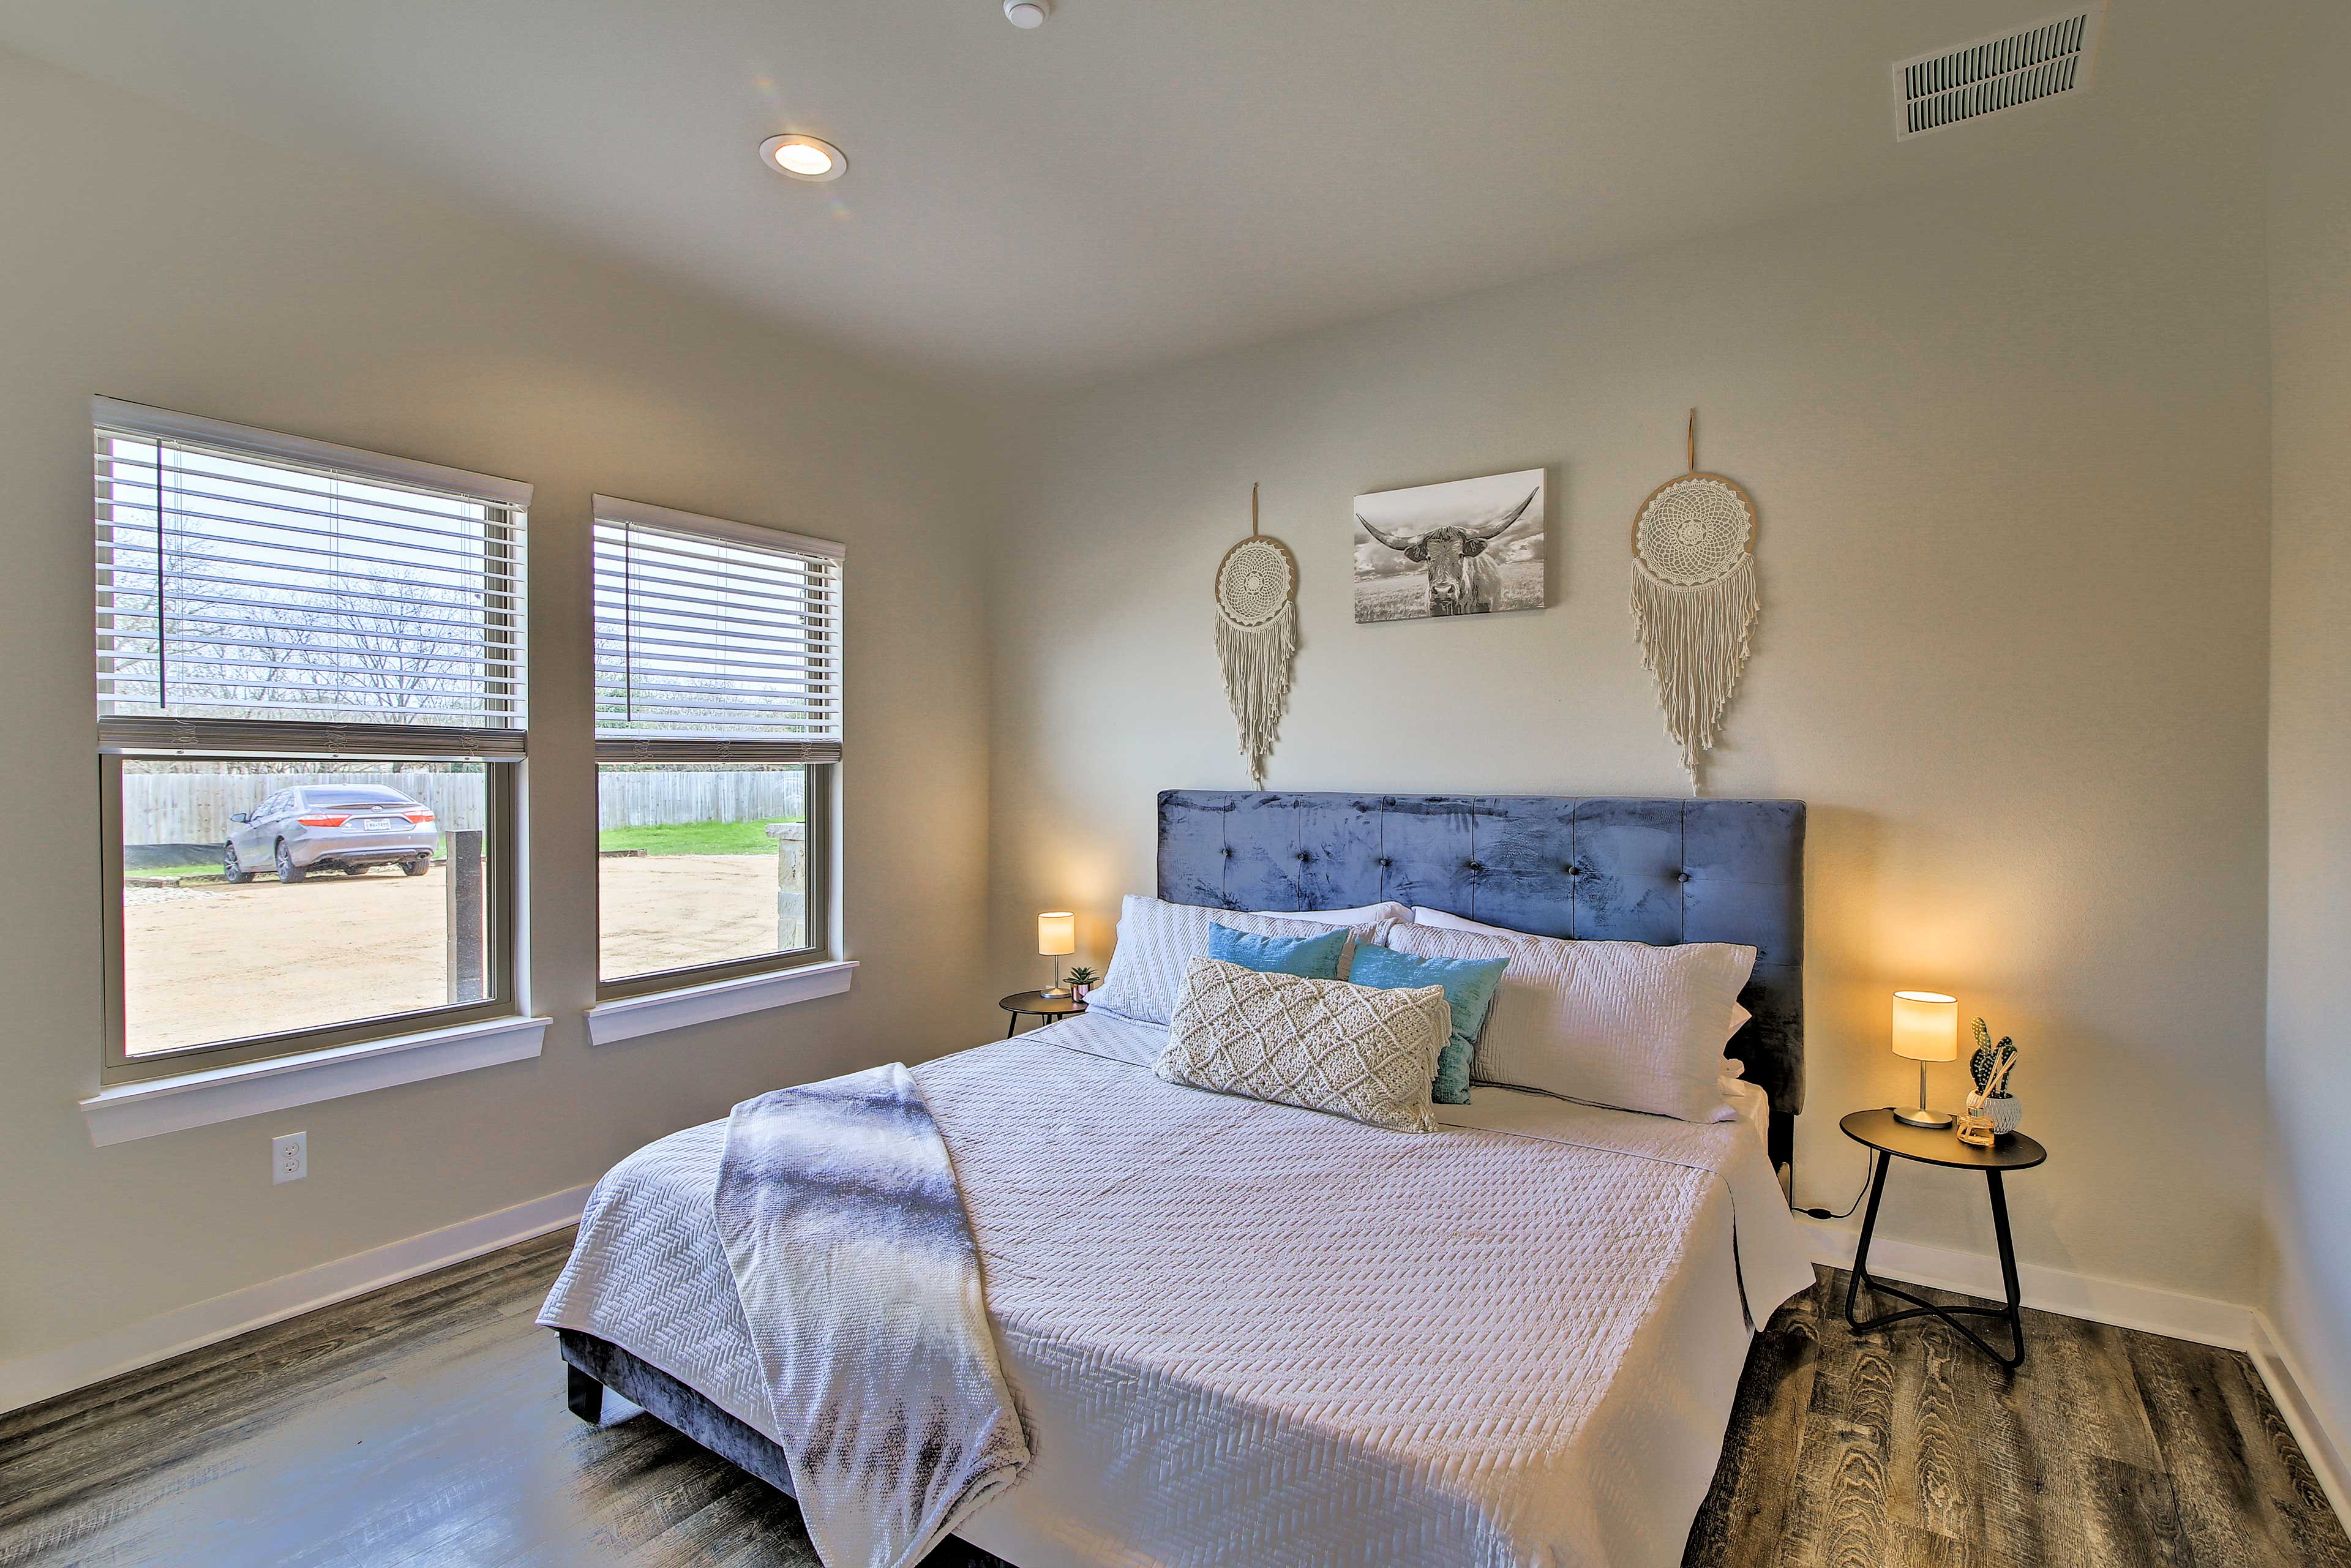 The master bedroom has a king-sized bed for 2.